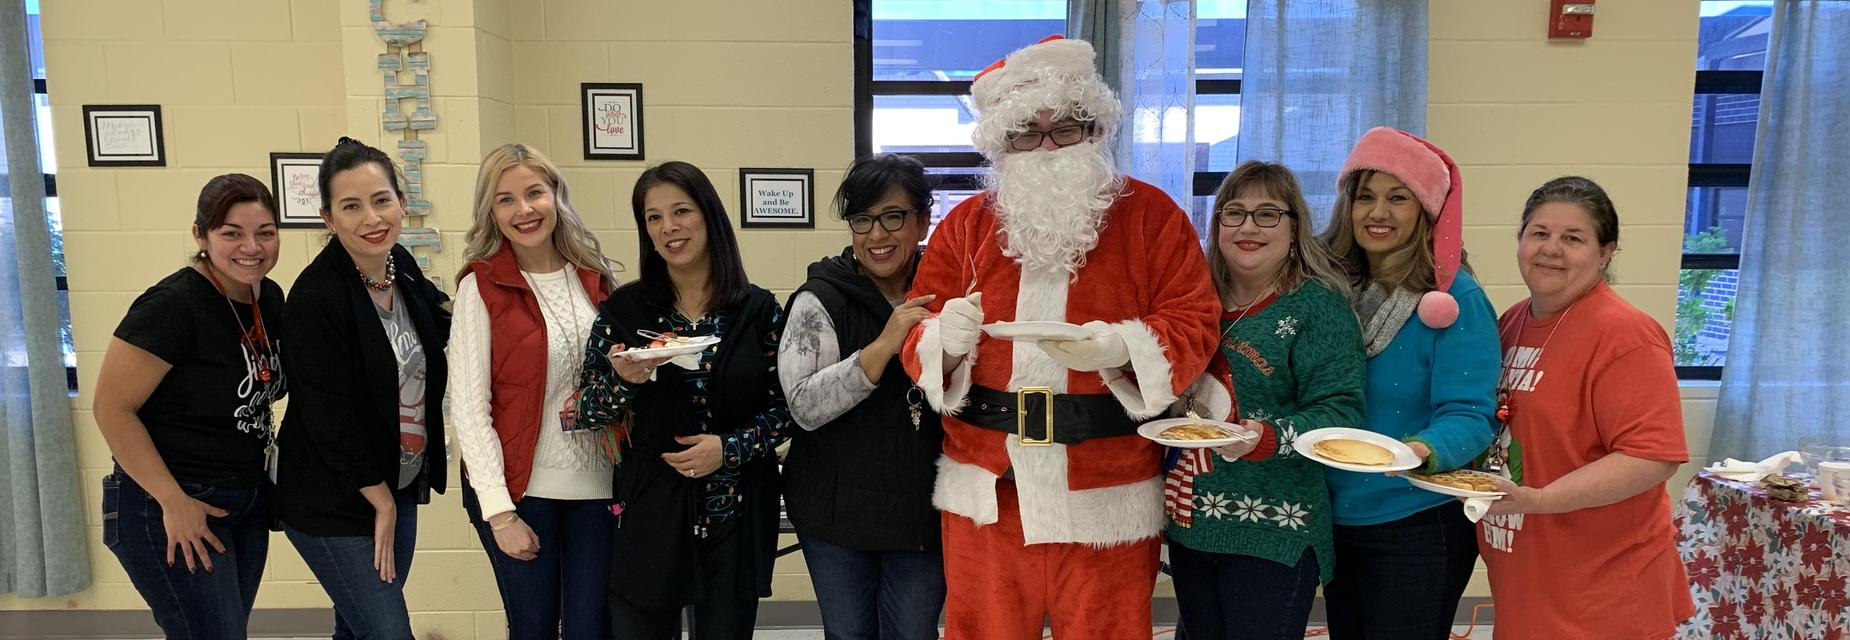 Santa with staff at breakfast